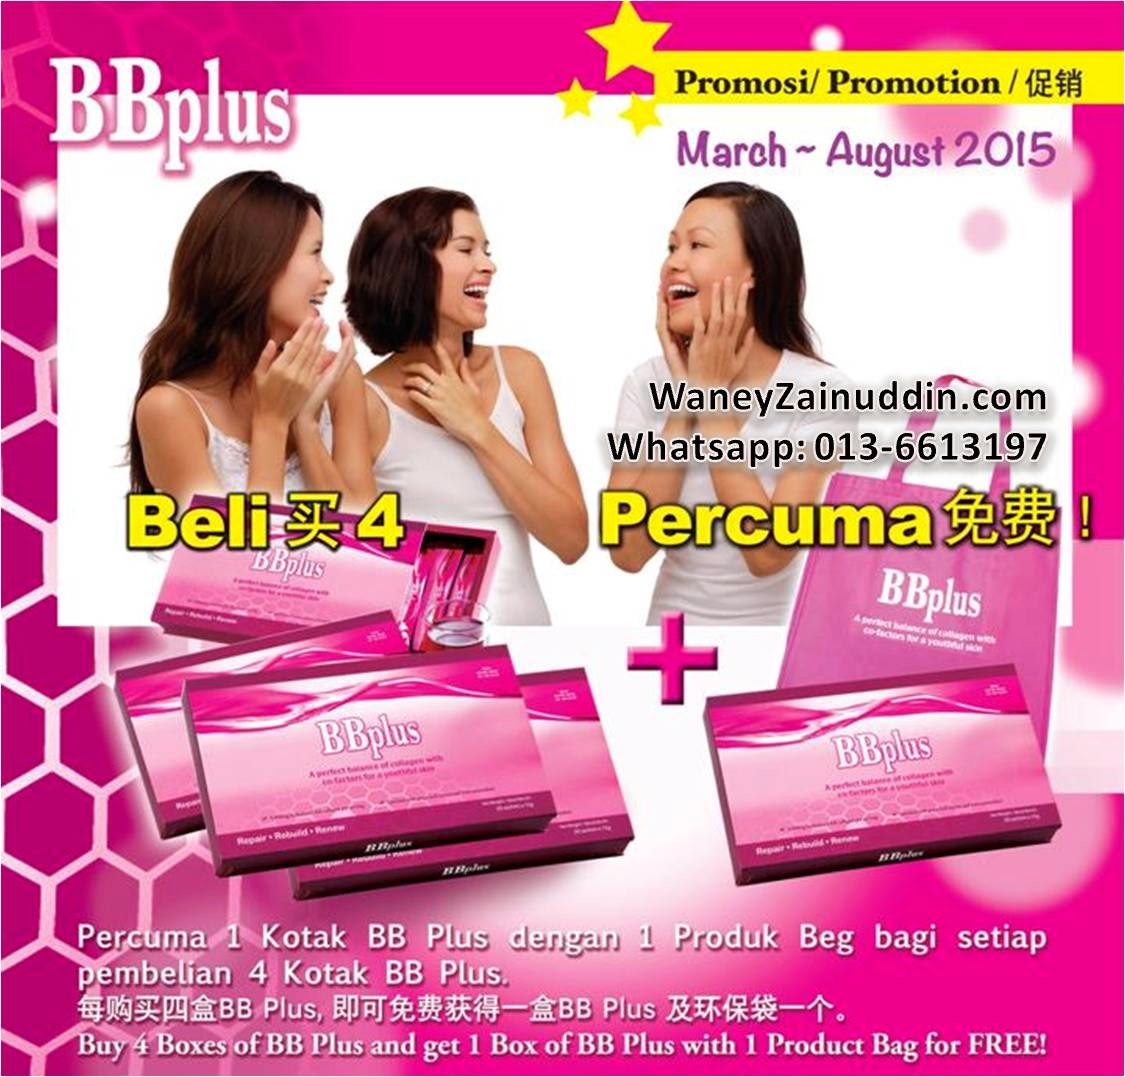 bb plus collagen, kolagen murah, kolagen paling berkesan, testimoni kolagen bb plus, harga bb plus collagen, promosi bb plus collagen, borong kolagen malaysia, dropship collagen malaysia